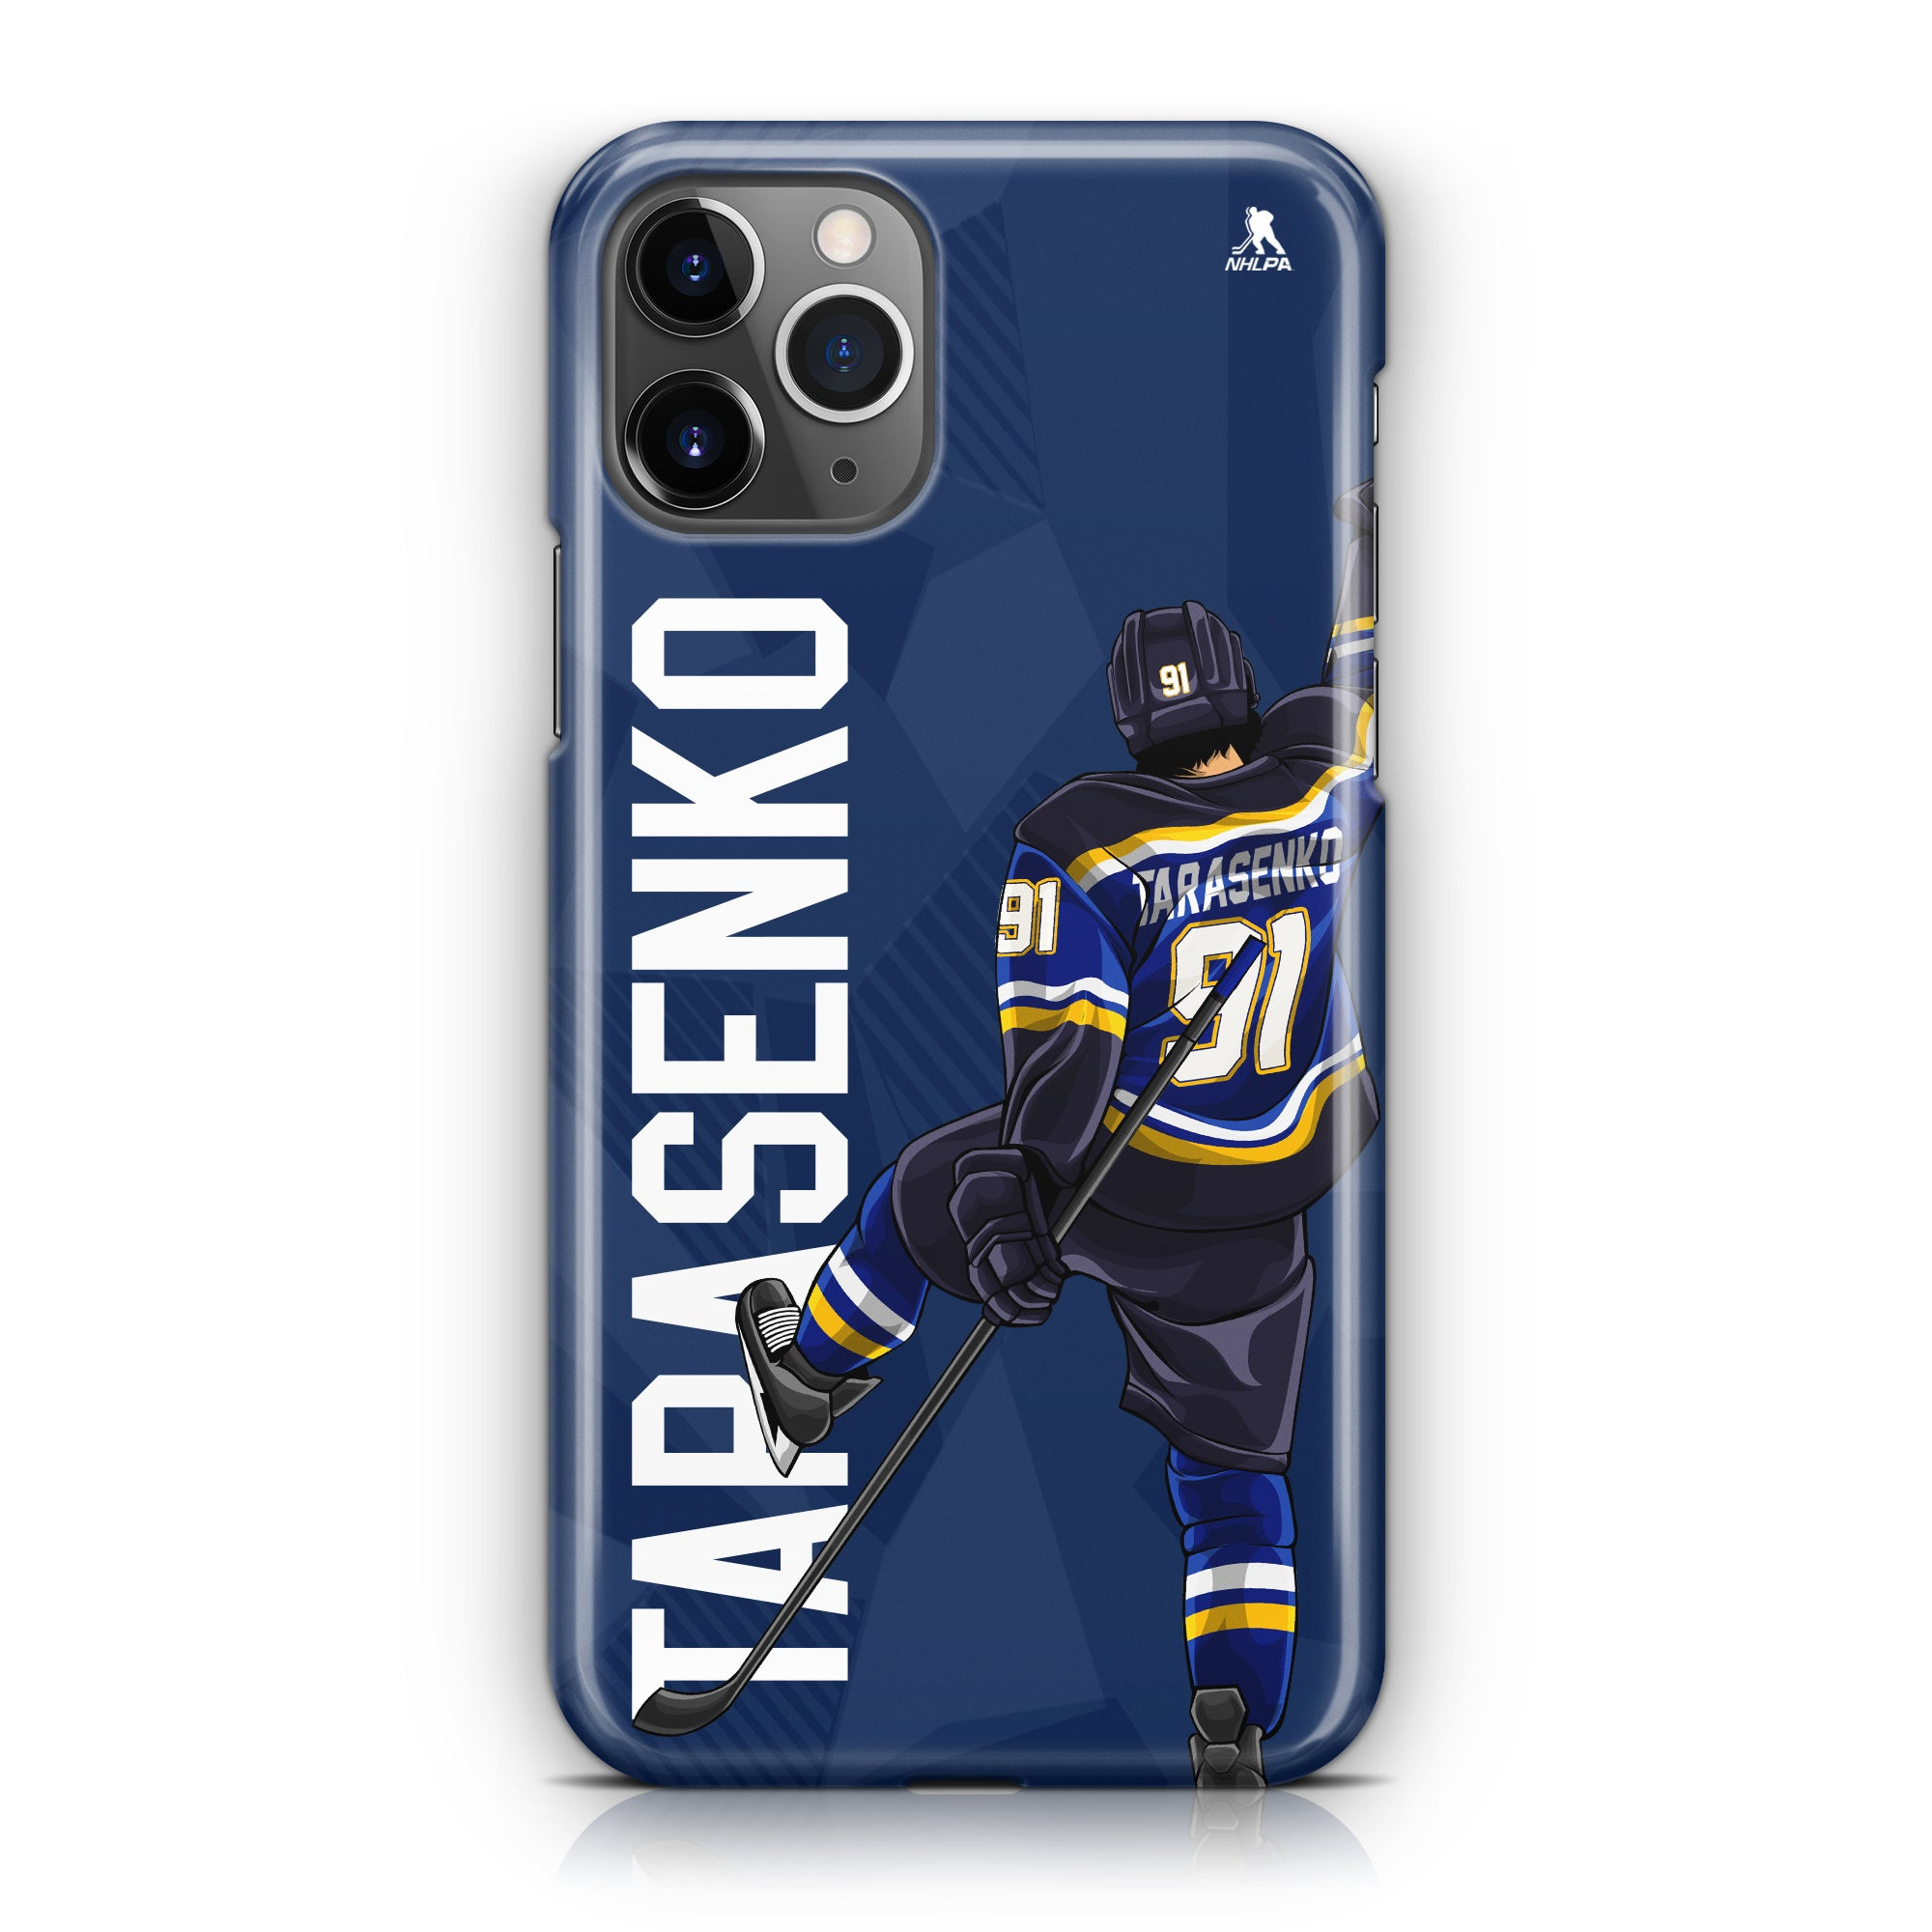 Tarasenko Star Series 2.0 Case